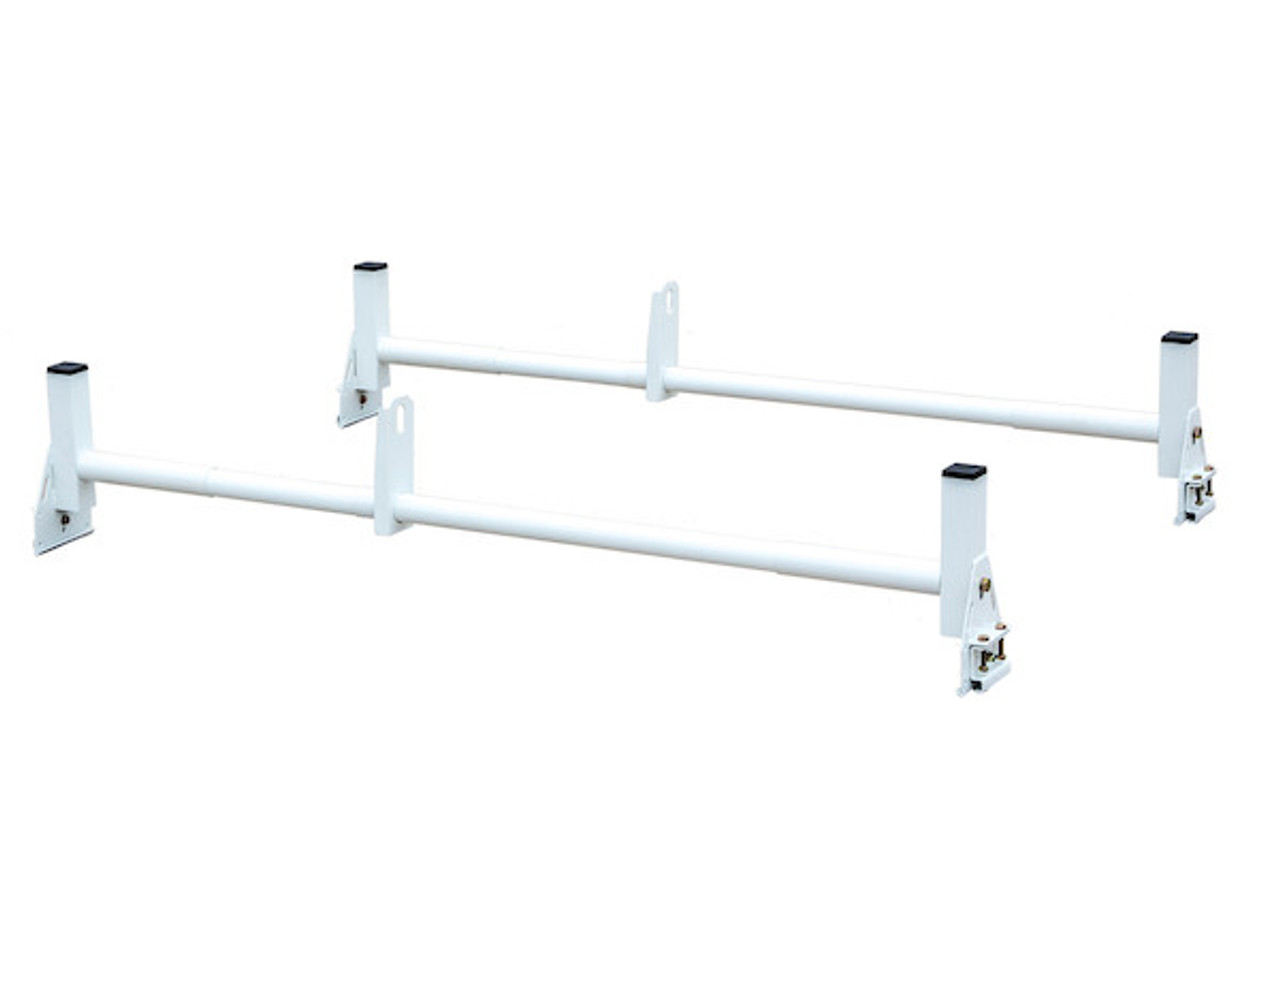 BUYERS 1501310 White Van Ladder Rack Set - 2 Bars And 2 Clamps Picture # 1 SOLD SEPARATELY